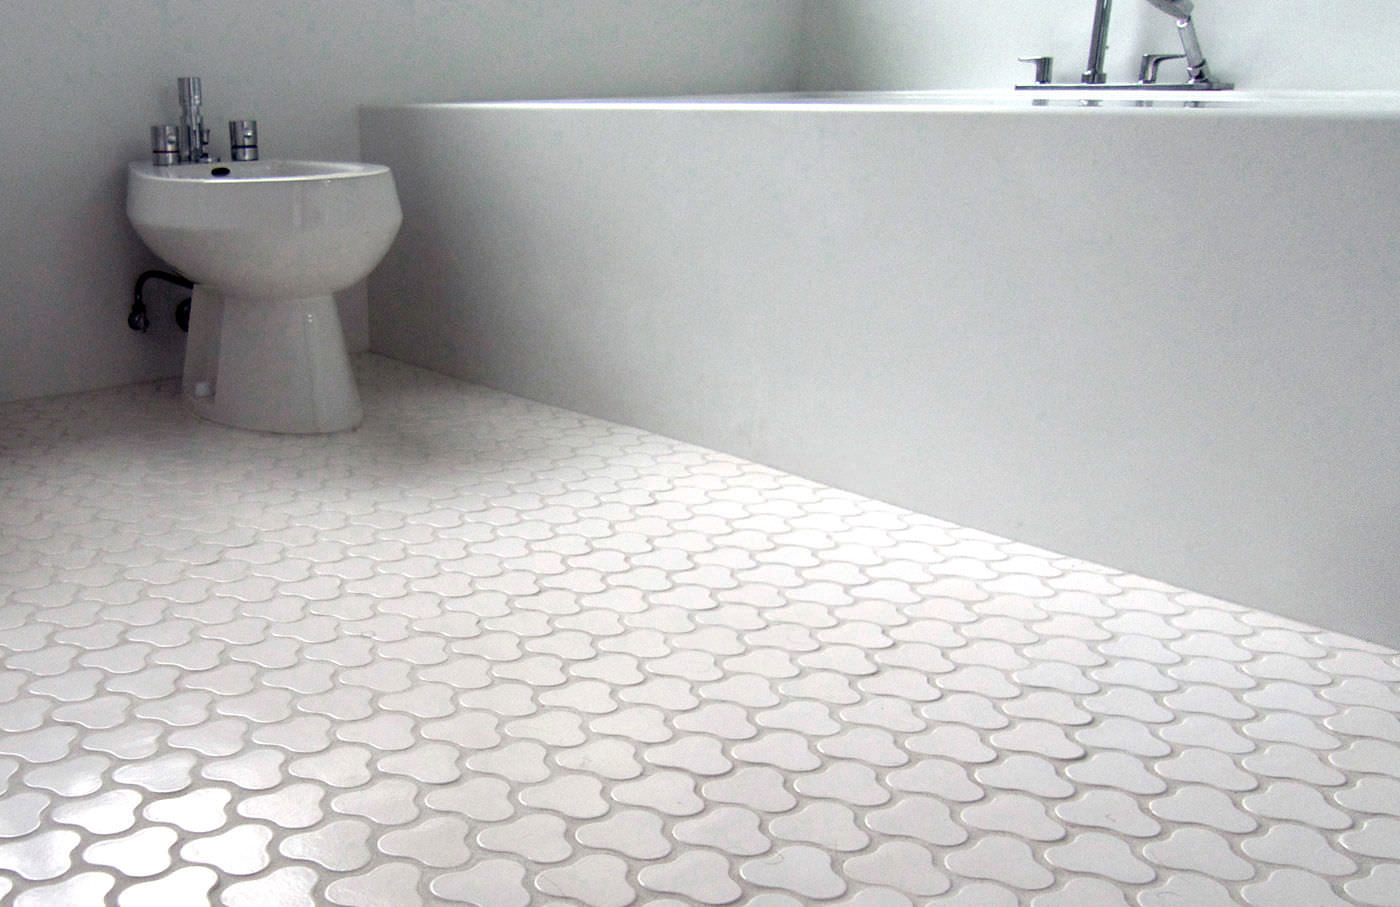 27amazing bathroom pebble floor tiles ideas and pictures beautiful bathtub tile designs 4 bathroom floor tile dailygadgetfo Gallery